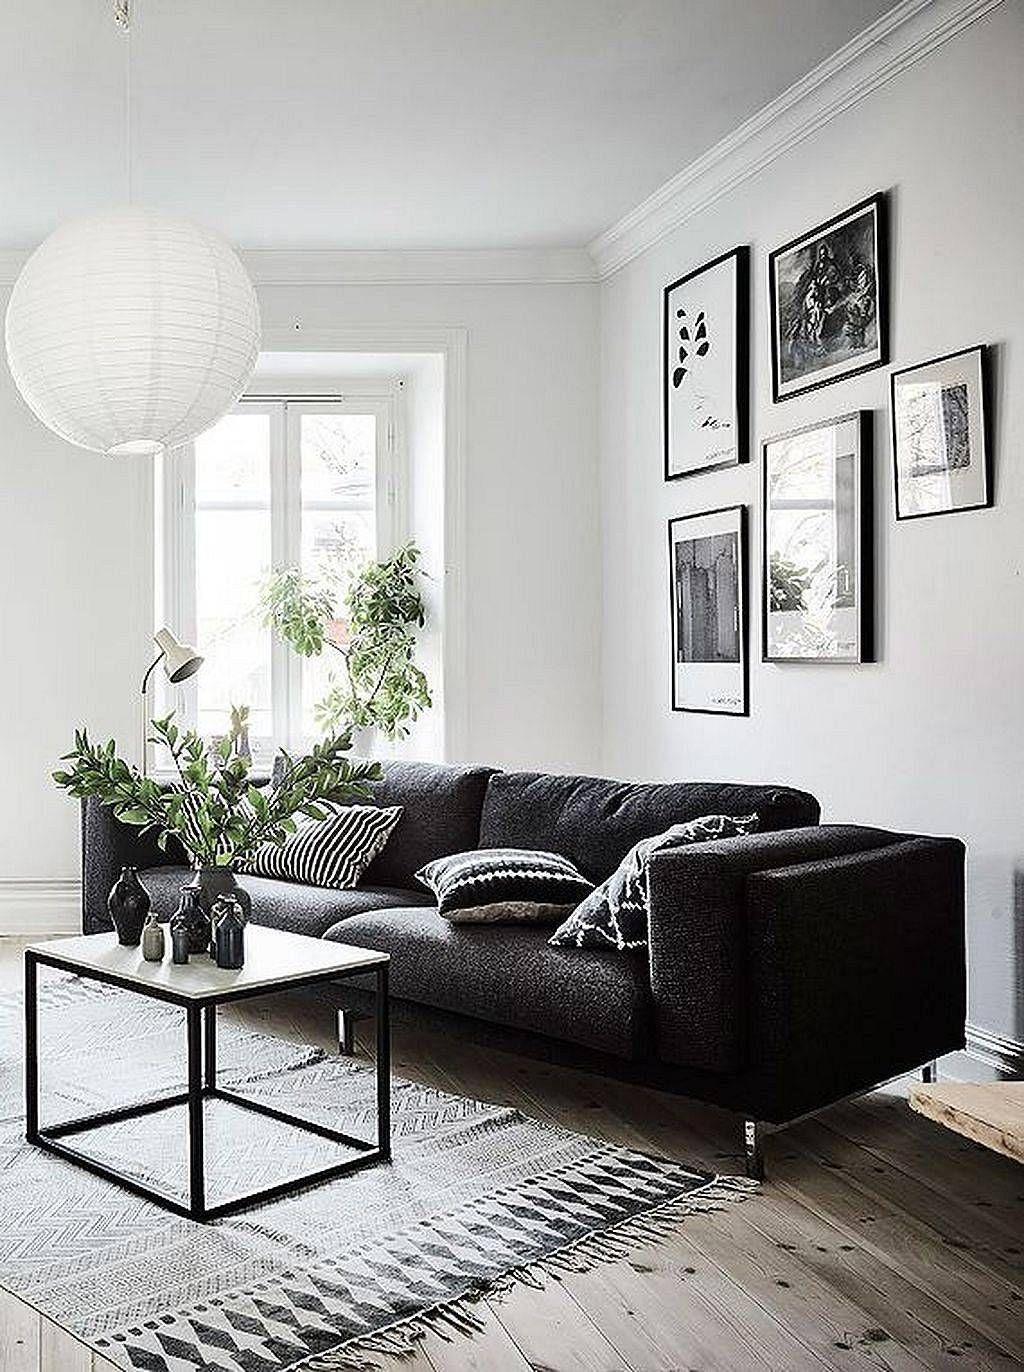 30 Black And White Living Room Ideas 2020 Neutral And Fir